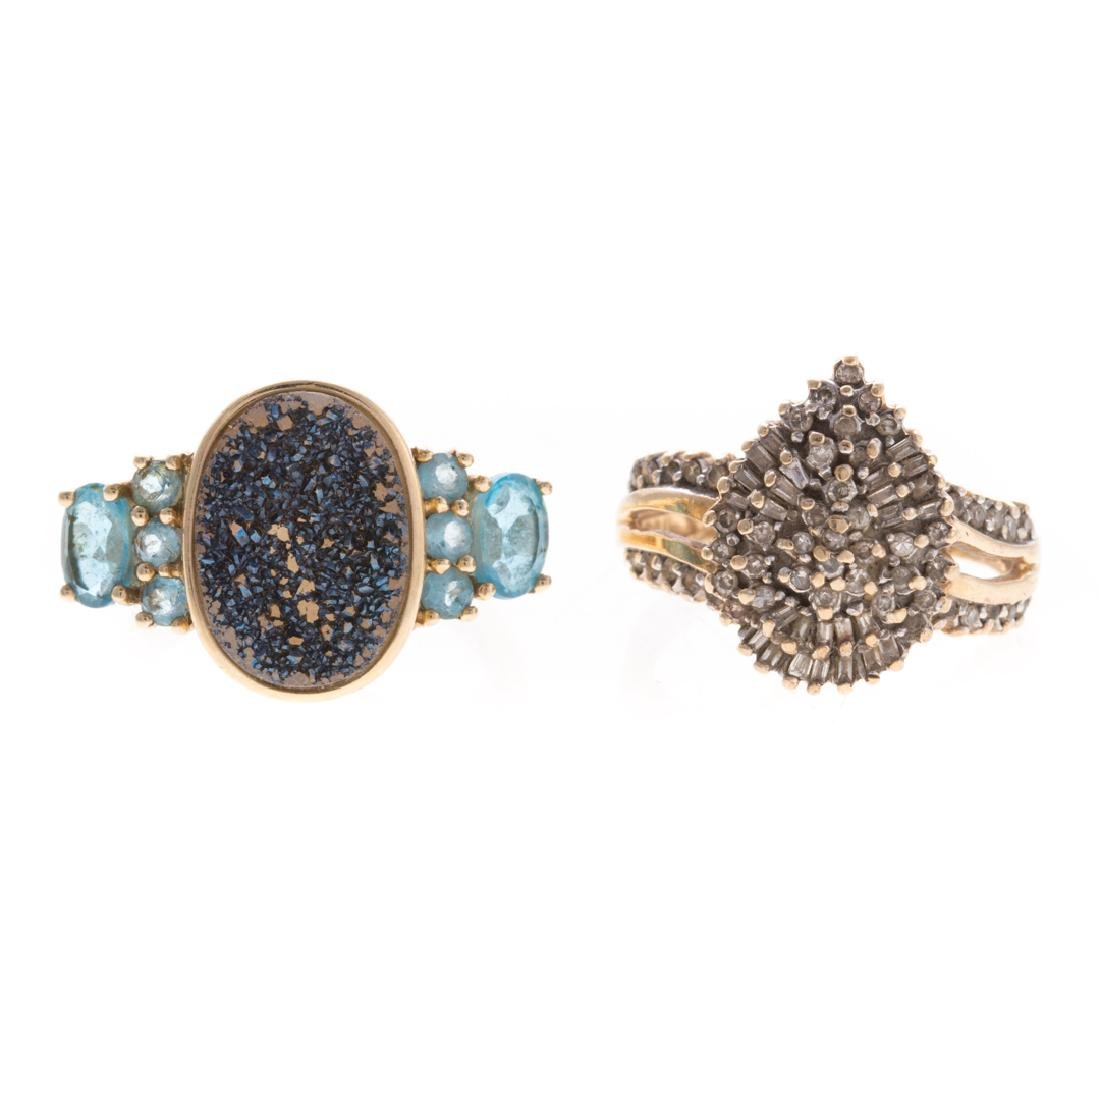 A Pair of Gemstone Rings in Gold